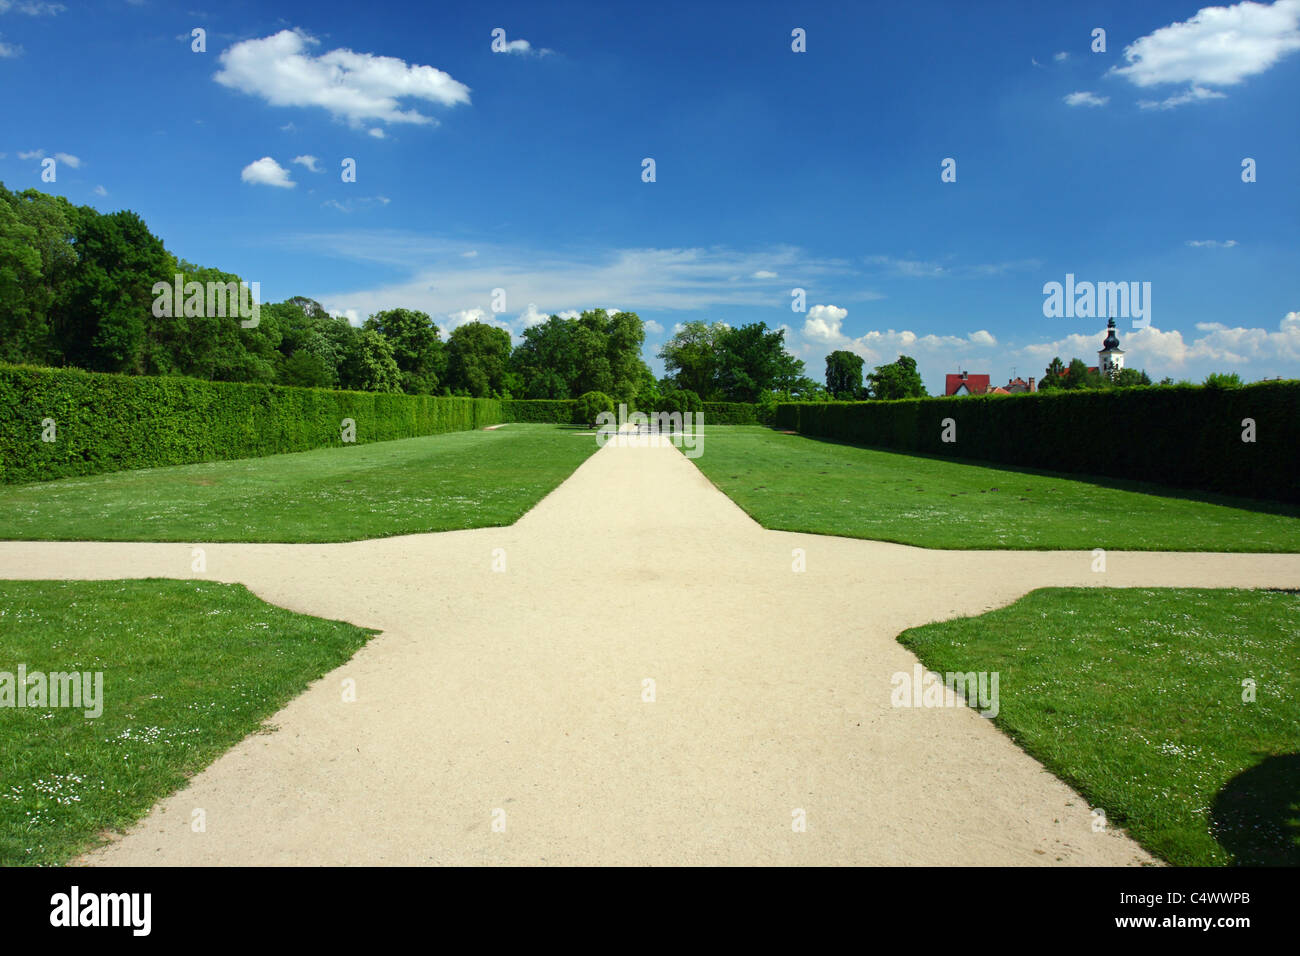 Crossroad in an English-French garden - Stock Image